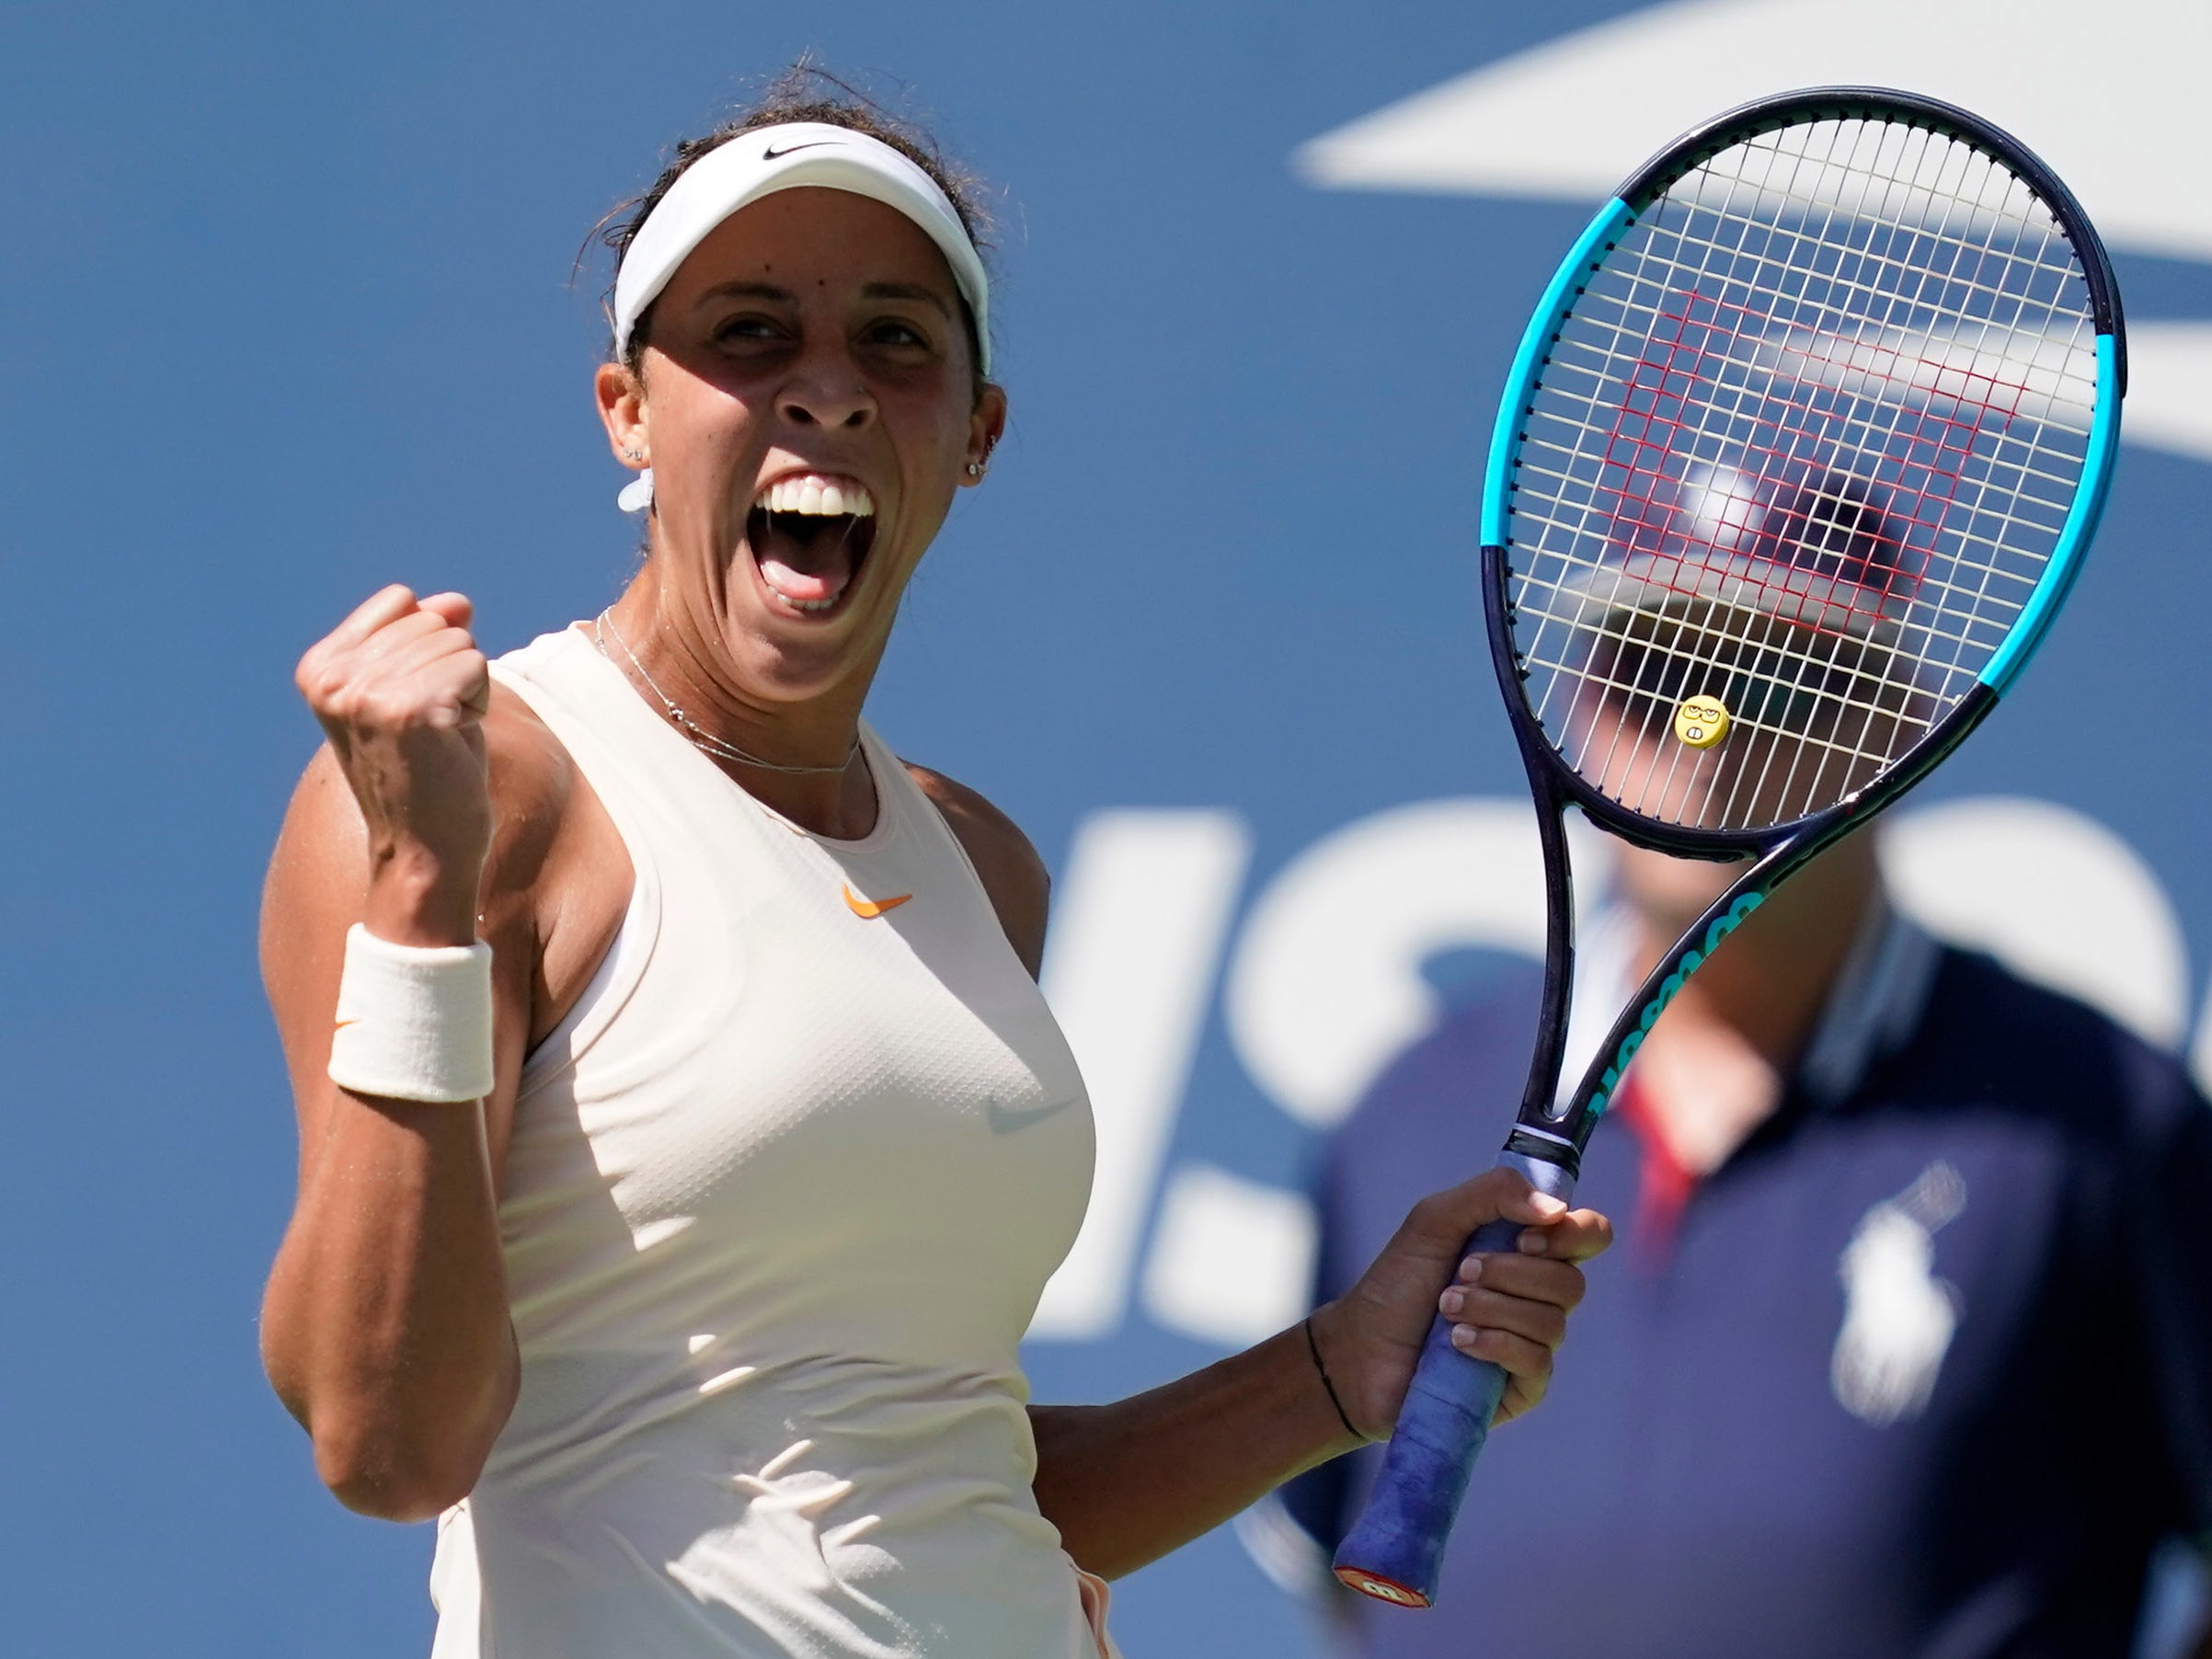 Madison Keys of the USA reacts after beating Dominika Cibulkova of Slovakia in a fourth-round match at the U.S. Open.